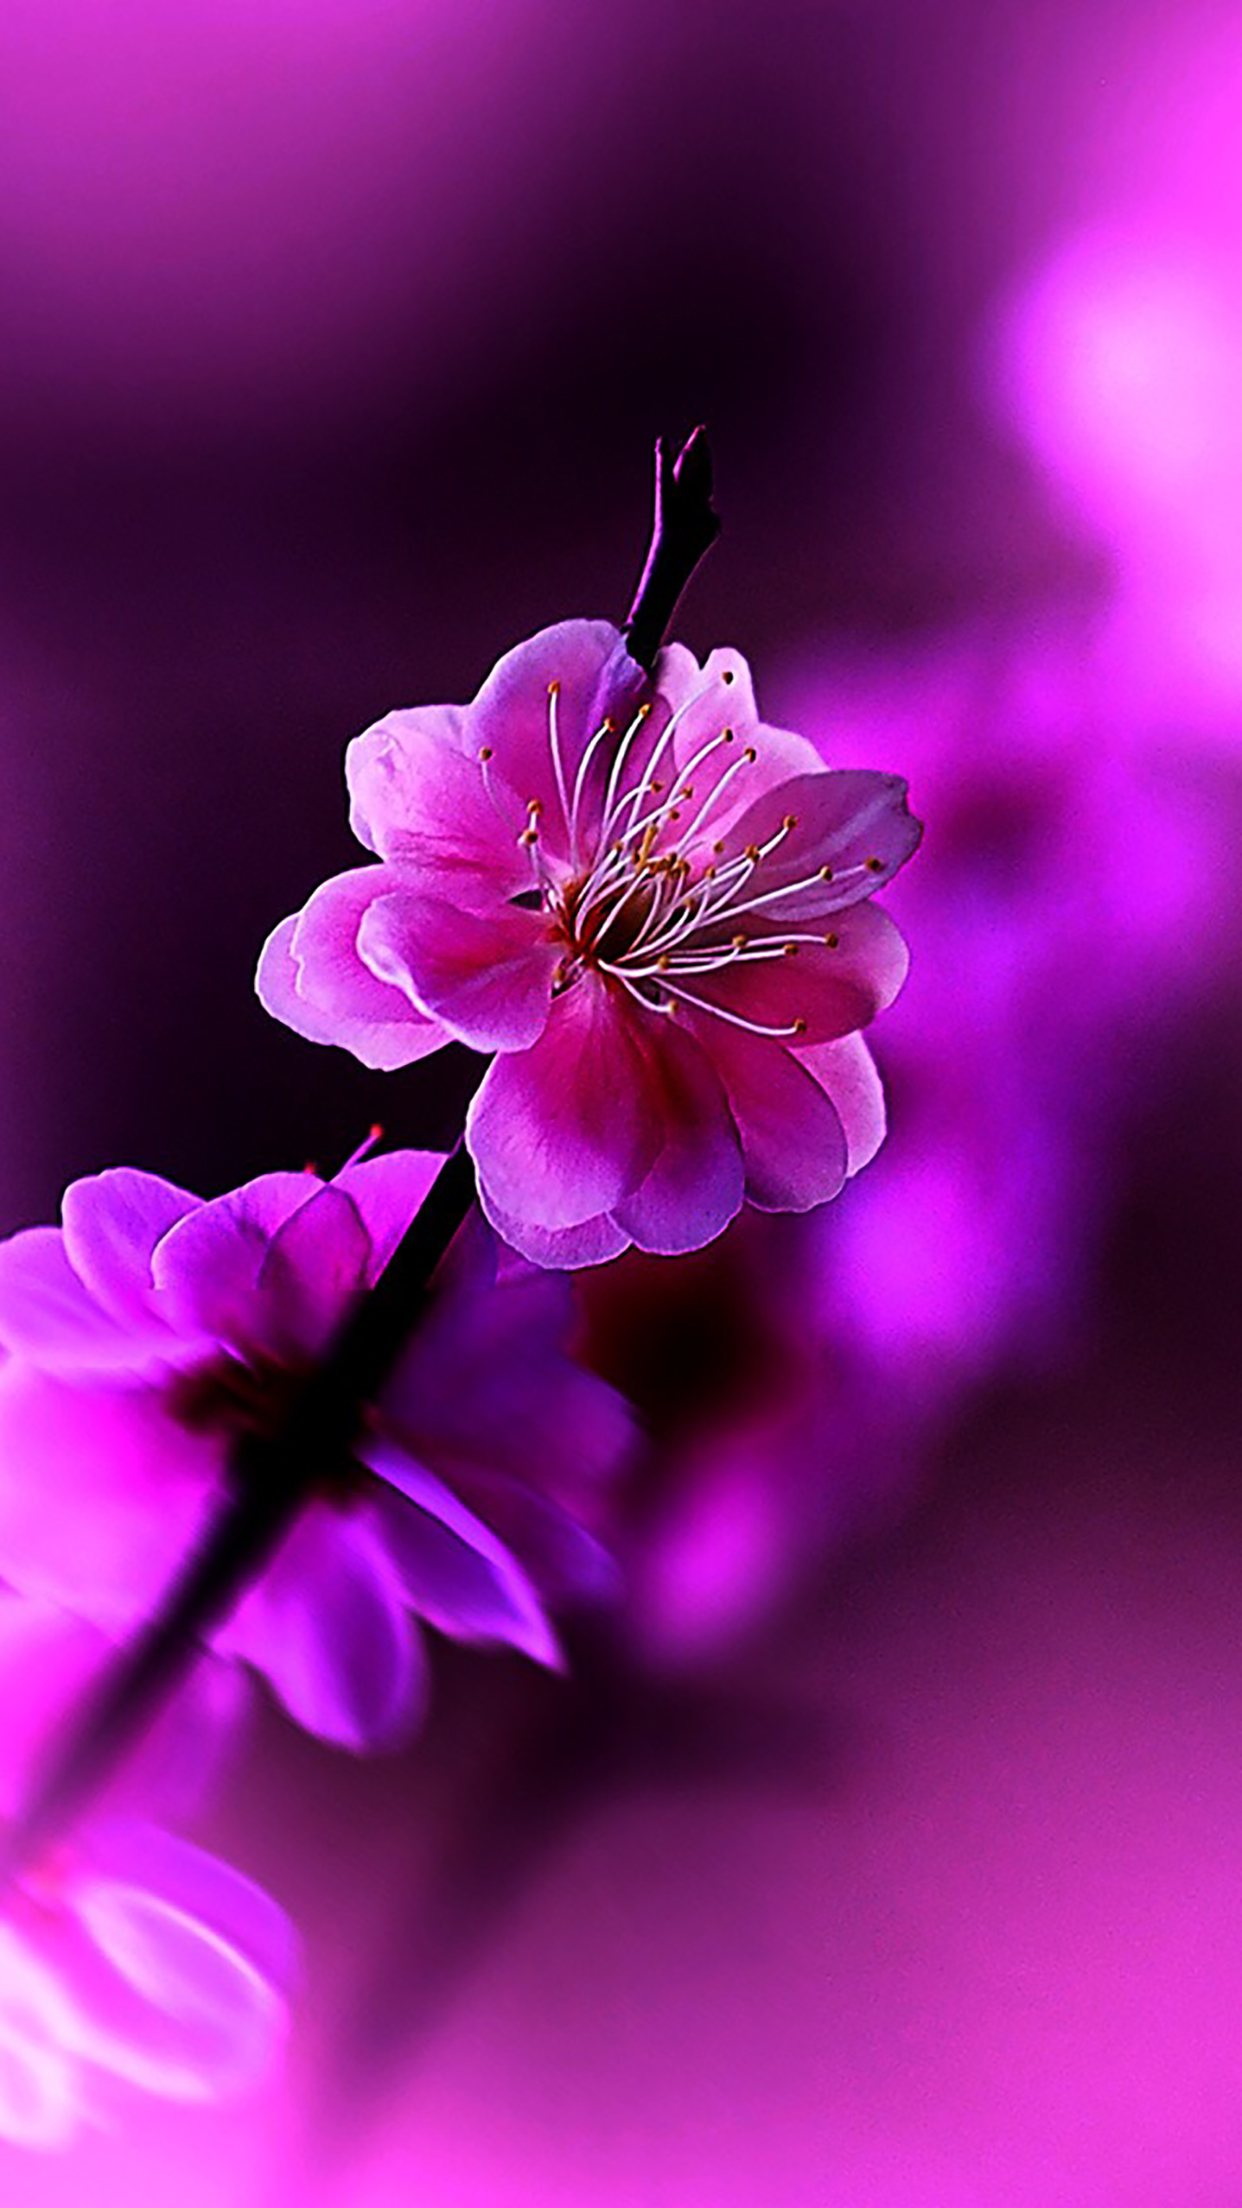 3d Parallax Background Wallpaper Free Download Flowers Violet Wallpaper For Iphone X 8 7 6 Free